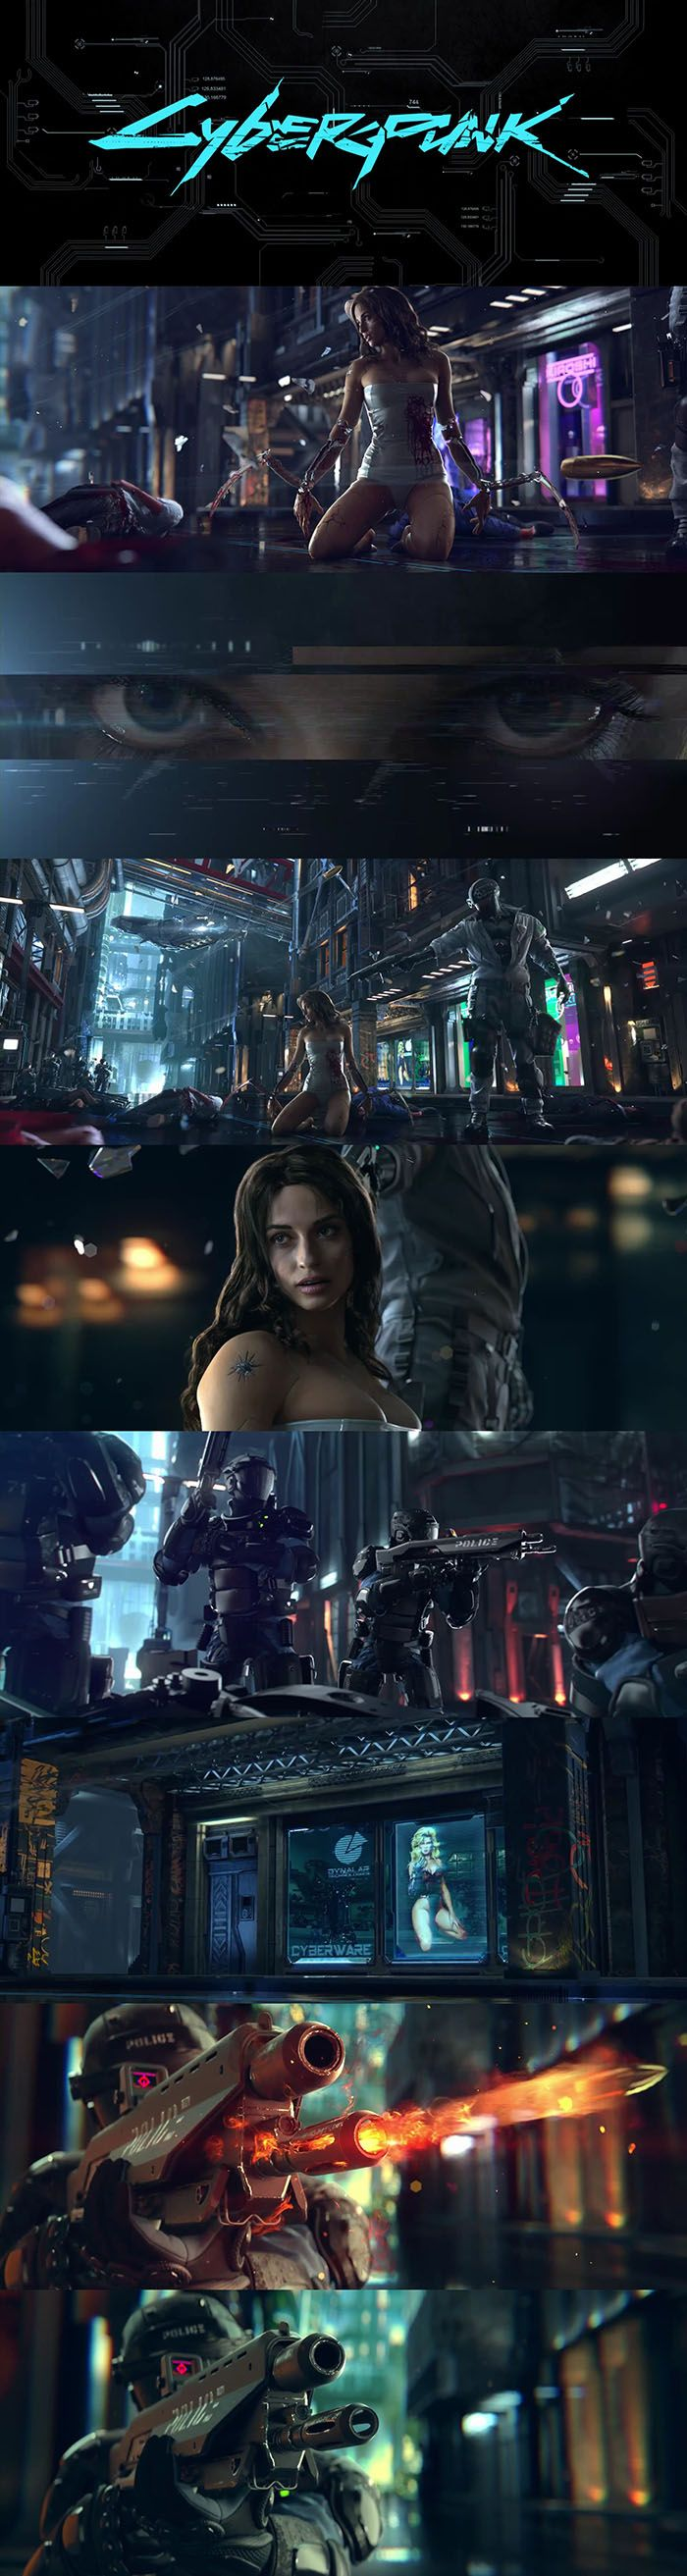 Best. Trailer. Ever.  World (VIDEO): http://futuristicnews.com/cyberpunk-2077-mike-pondsmith-about-the-cyberpunk-world-video/